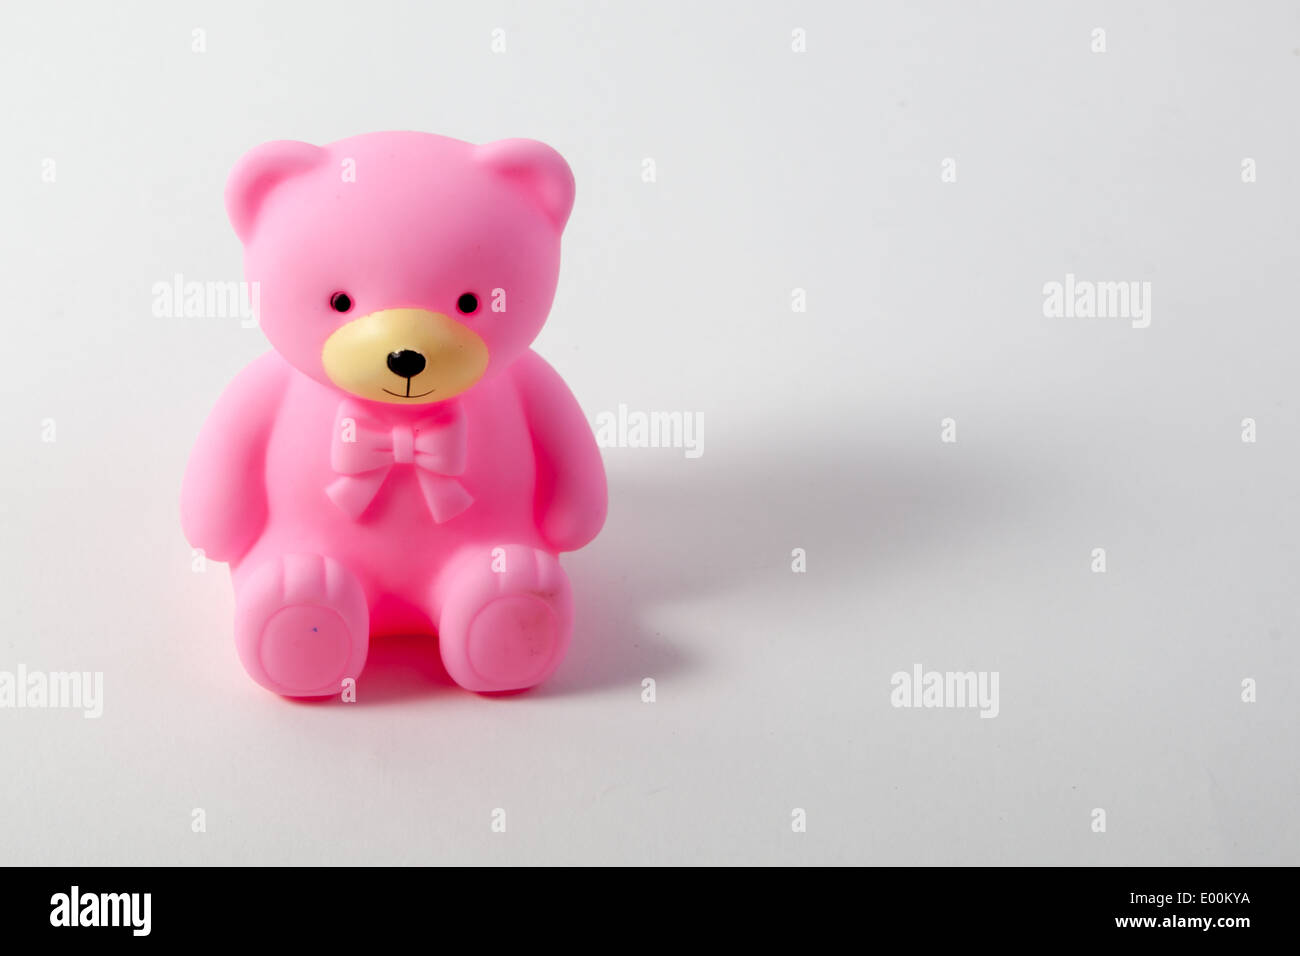 toys on a white background a pink teddy bear for a baby girl stock